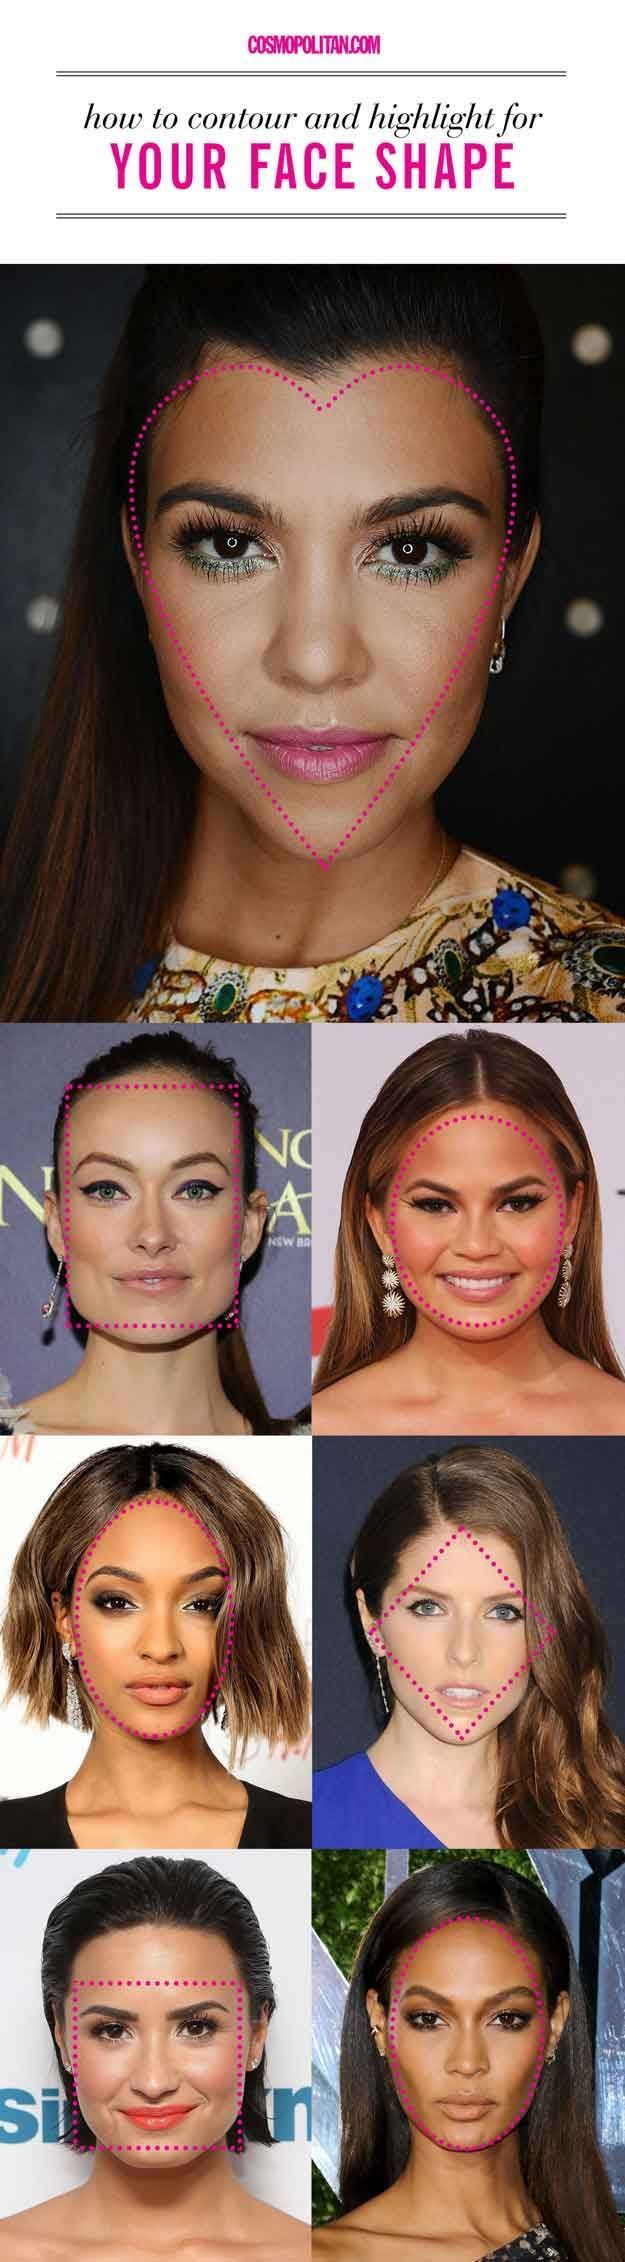 Check out Contouring By Facial Shape at http://makeuptutorials.com/contouring-by-facial-shape/